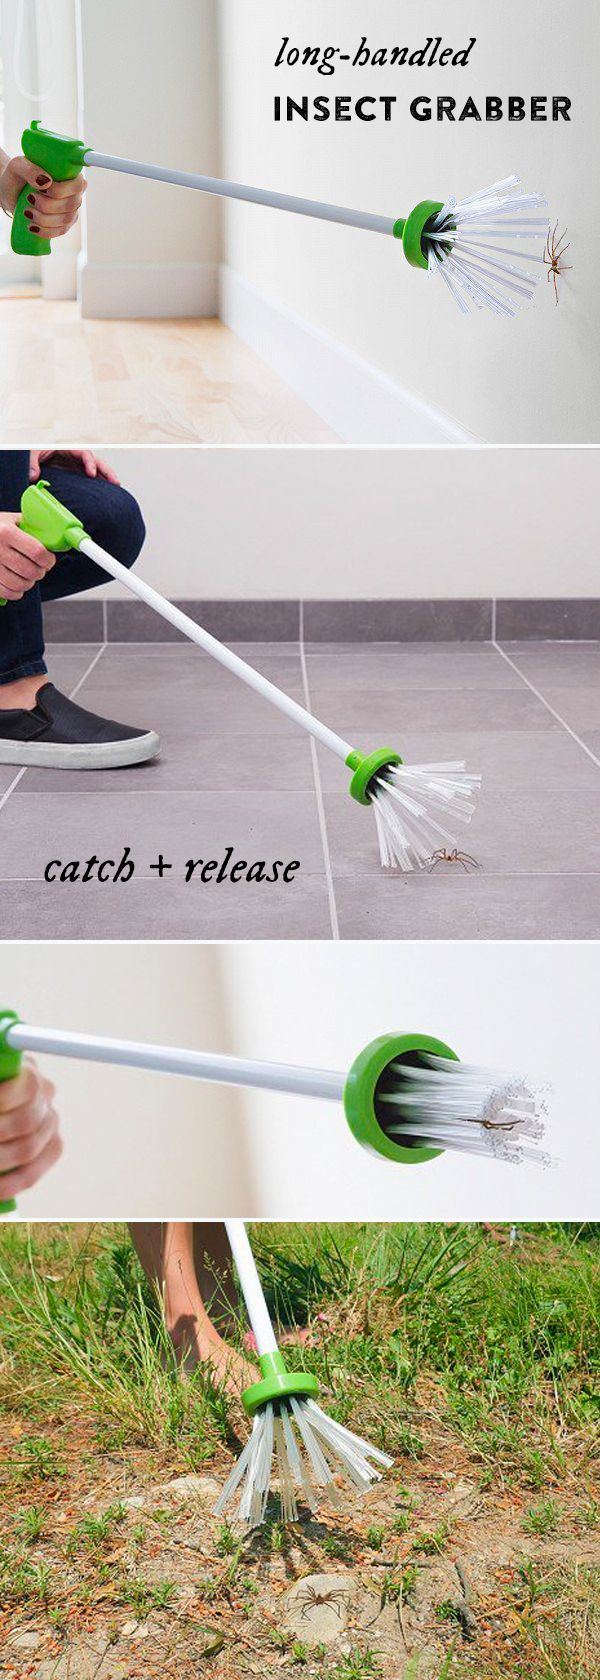 Safe, comfortable bug catching—for both you and the critter. A long handle keeps you at arm's length, while bristles trap the bug without harming it. The tool for spider lovers and haters alike.